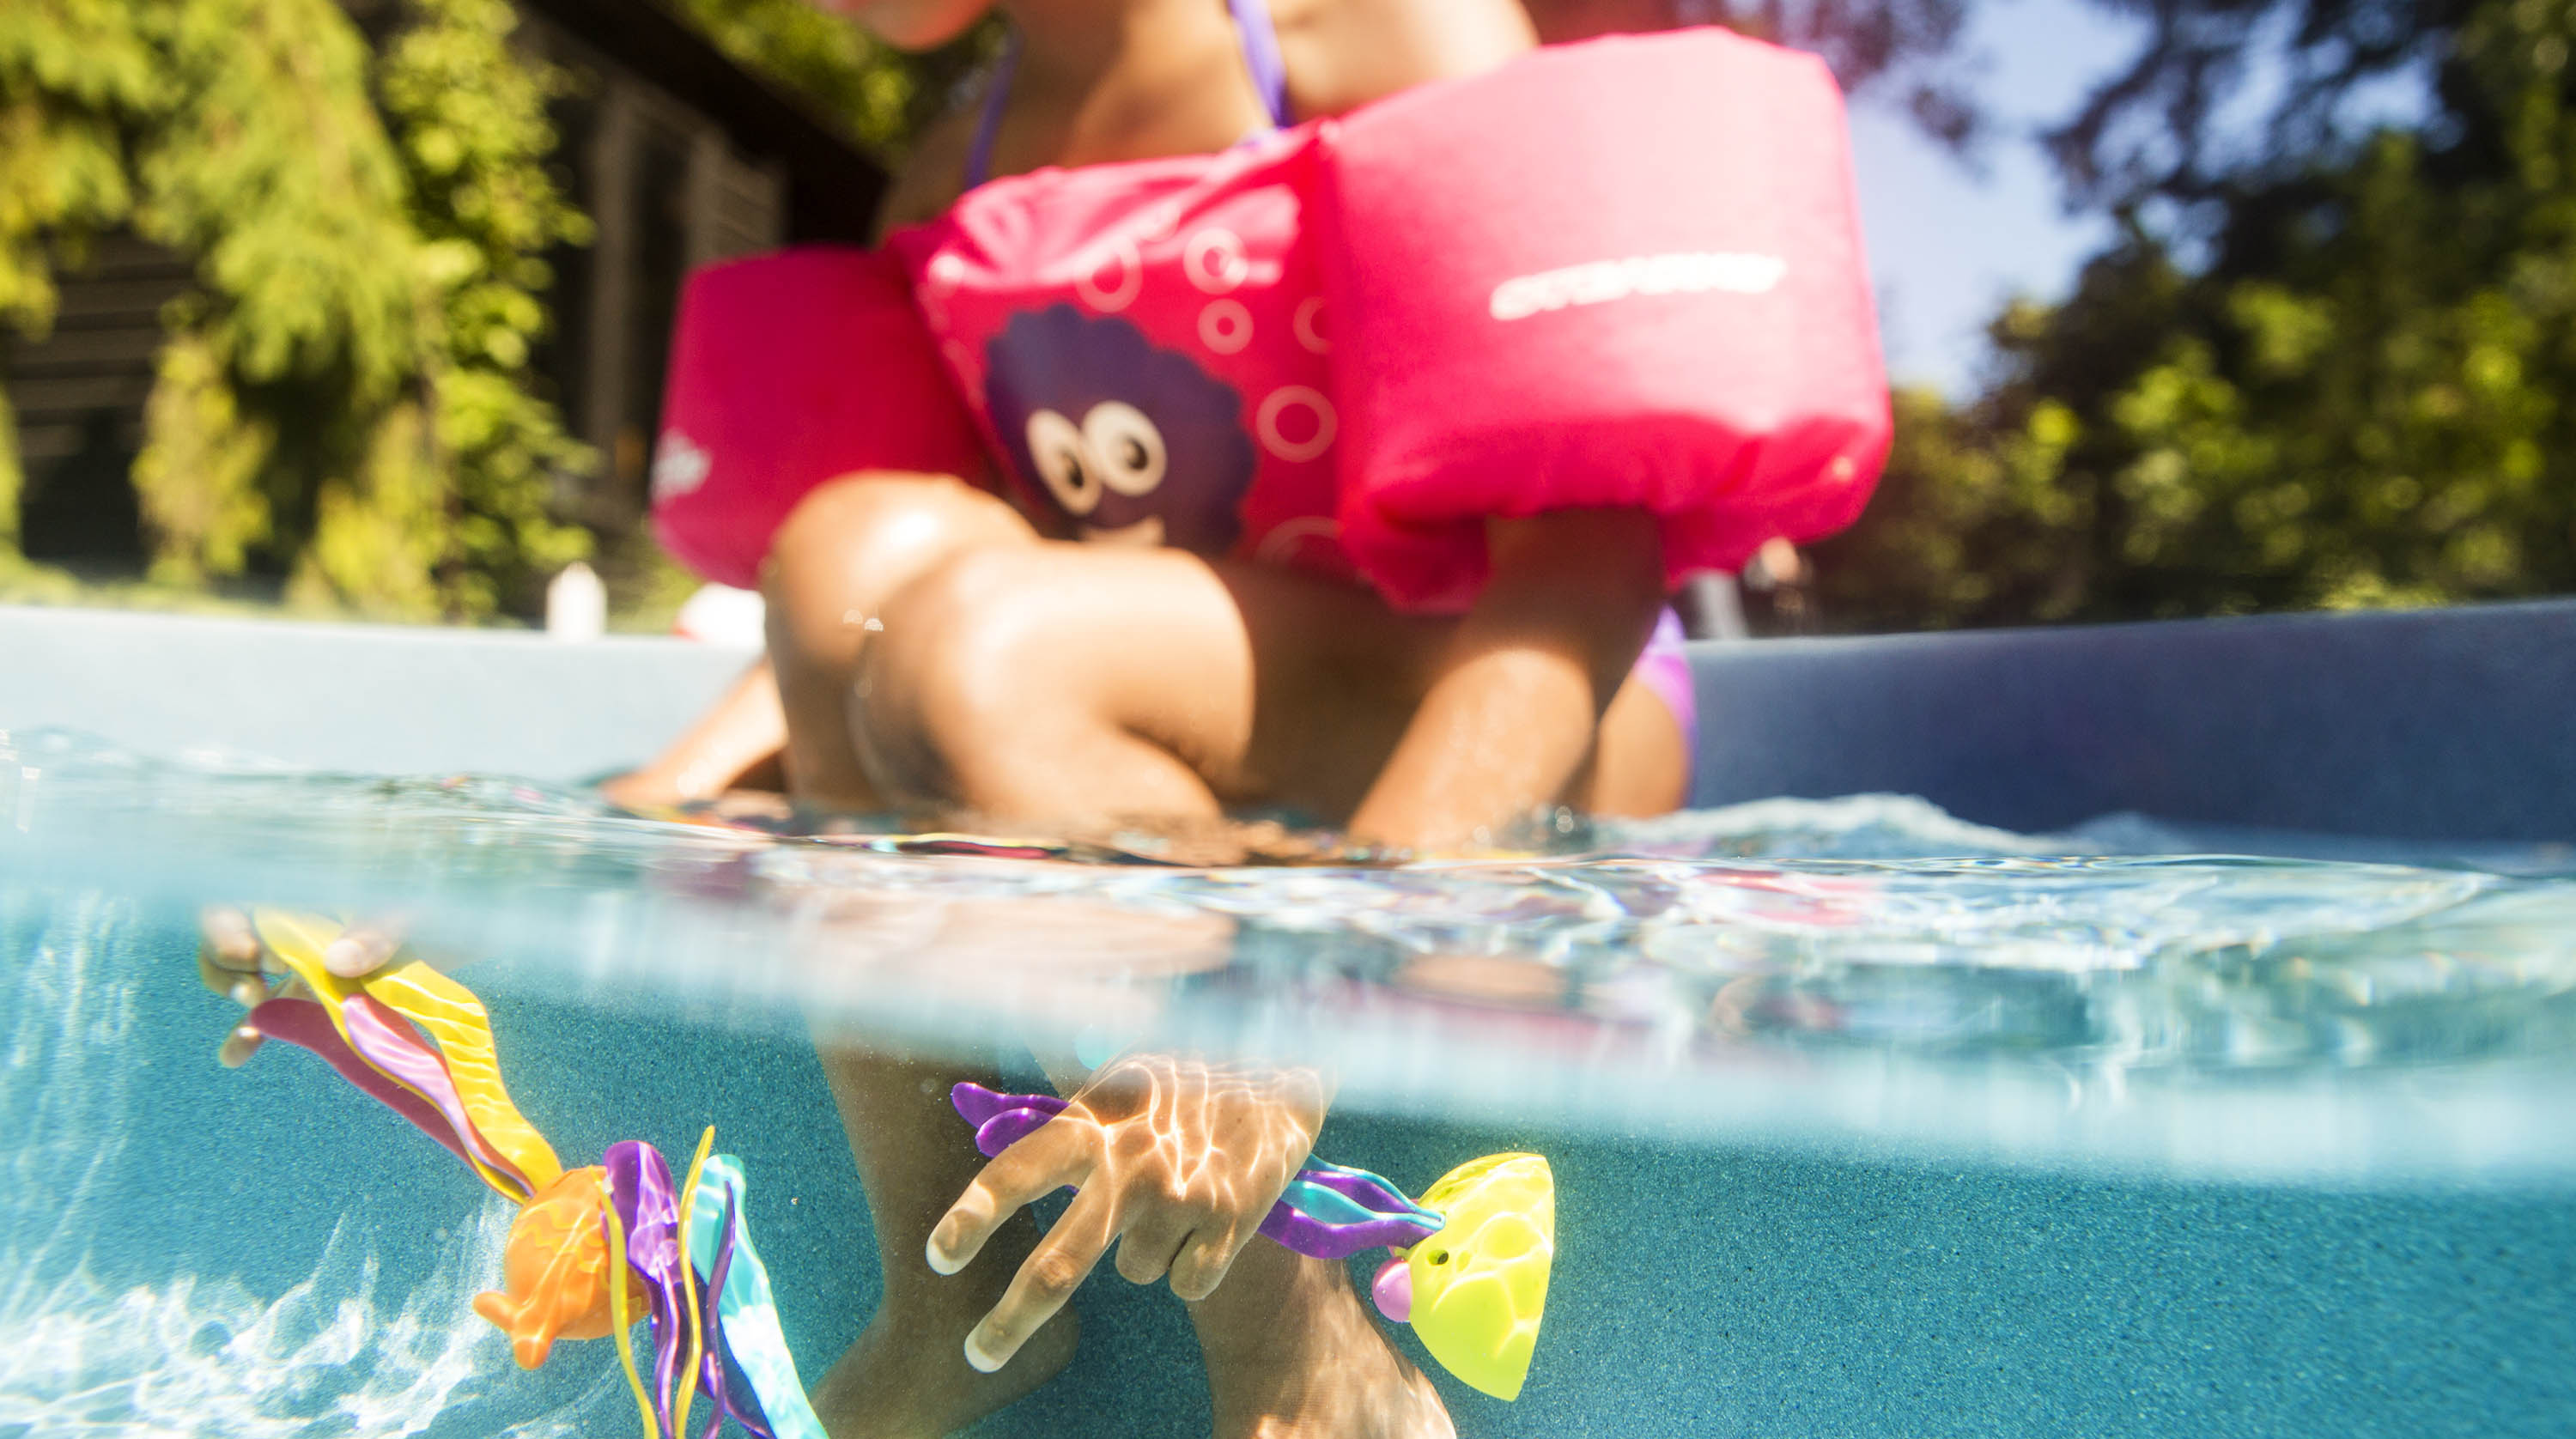 Girl reaching into the pool for sinking toys.